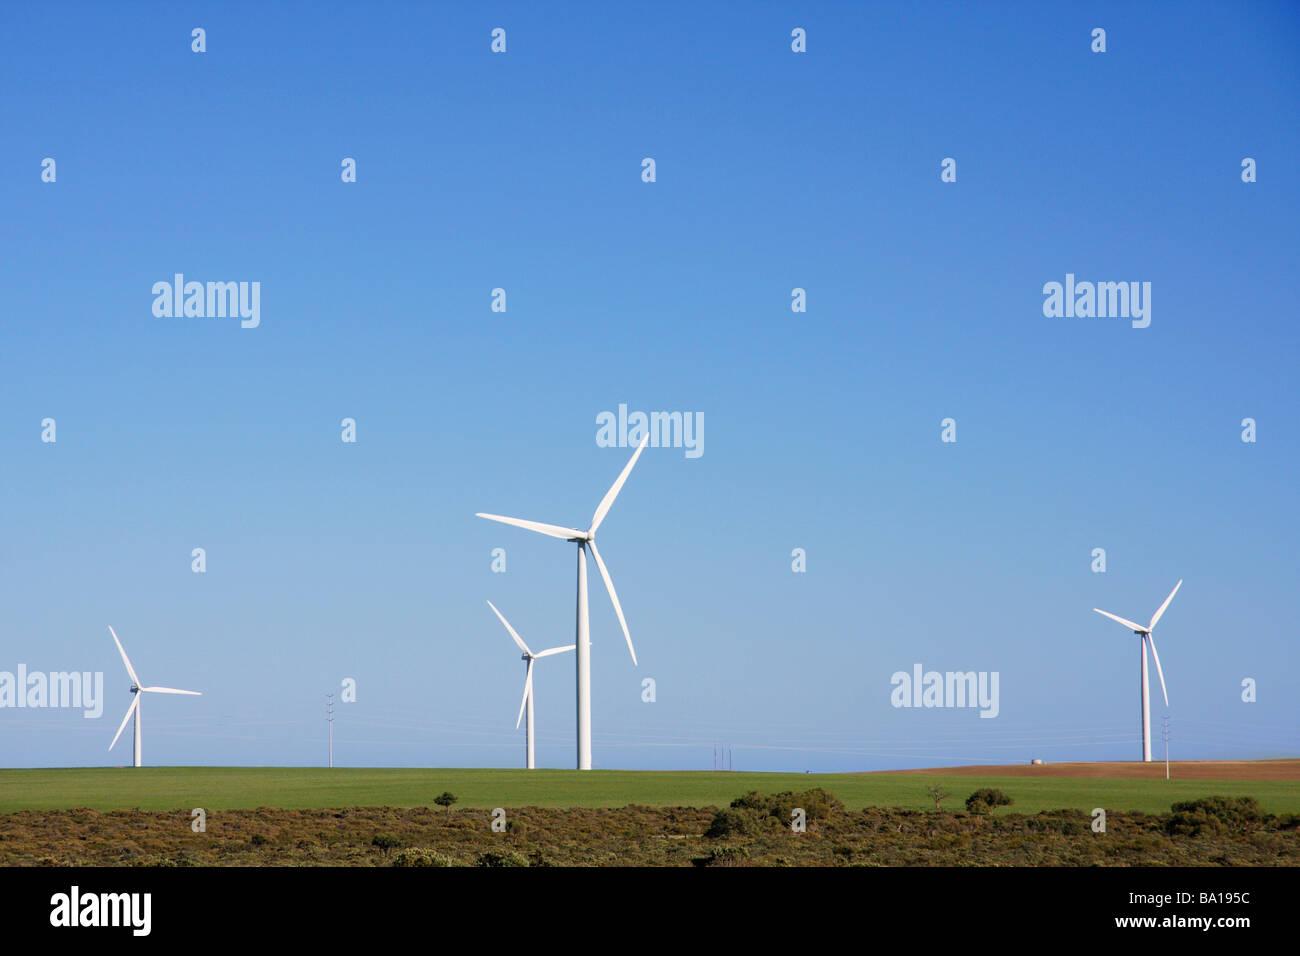 Wind farm - Stock Image